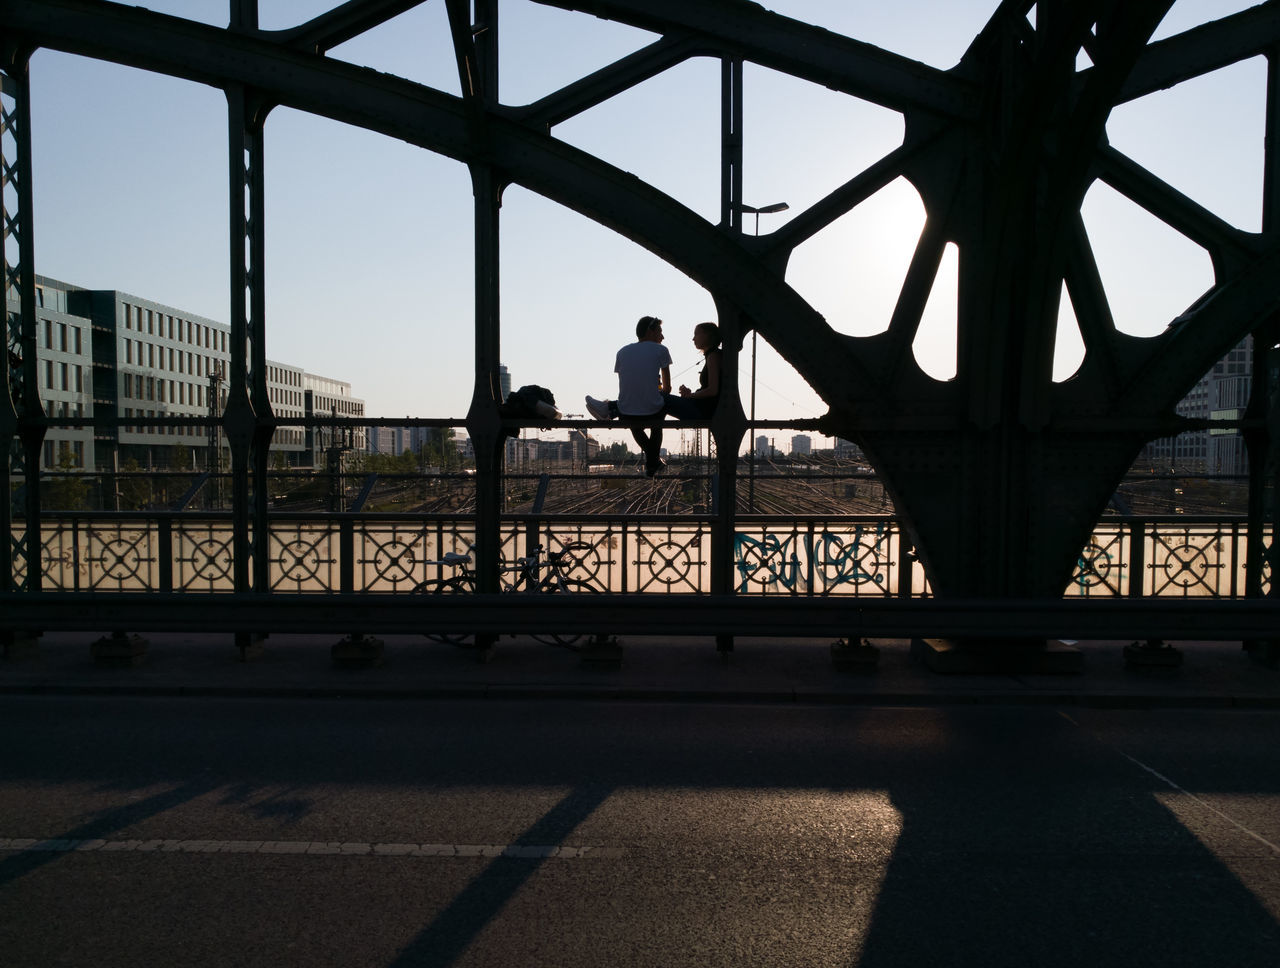 Bridge - Man Made Structure Sky Built Structure Silhouette Outdoors City Architecture Cityscape Day Urban Skyline People Huaweiphotography Huawei P9 Leica Streetphotography Sunset Sunset Silhouettes